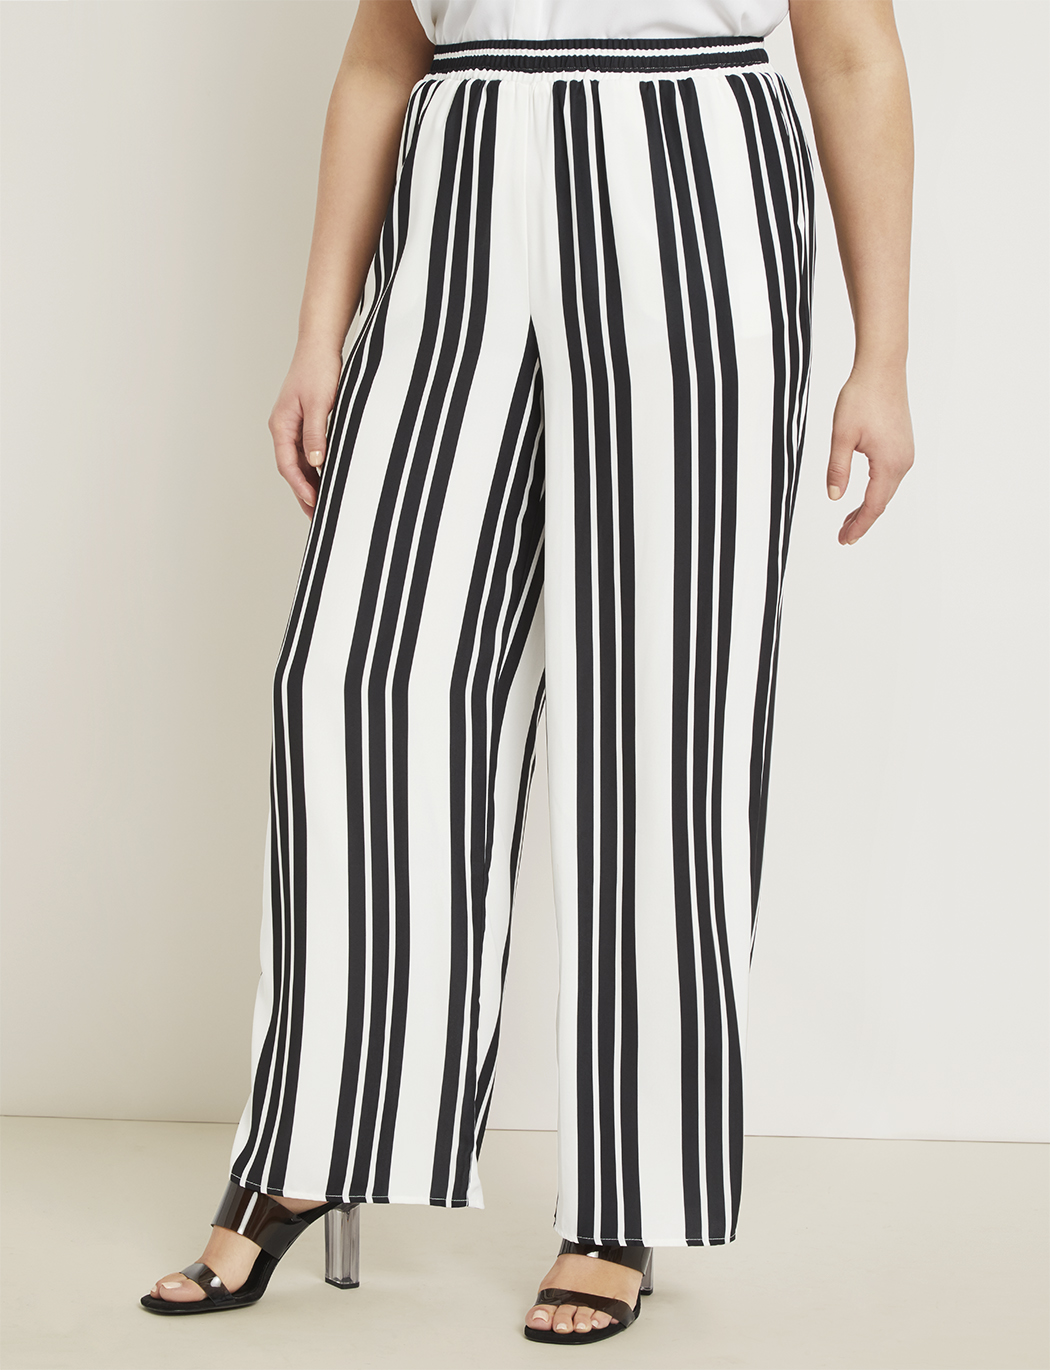 Stripe Soft Pant